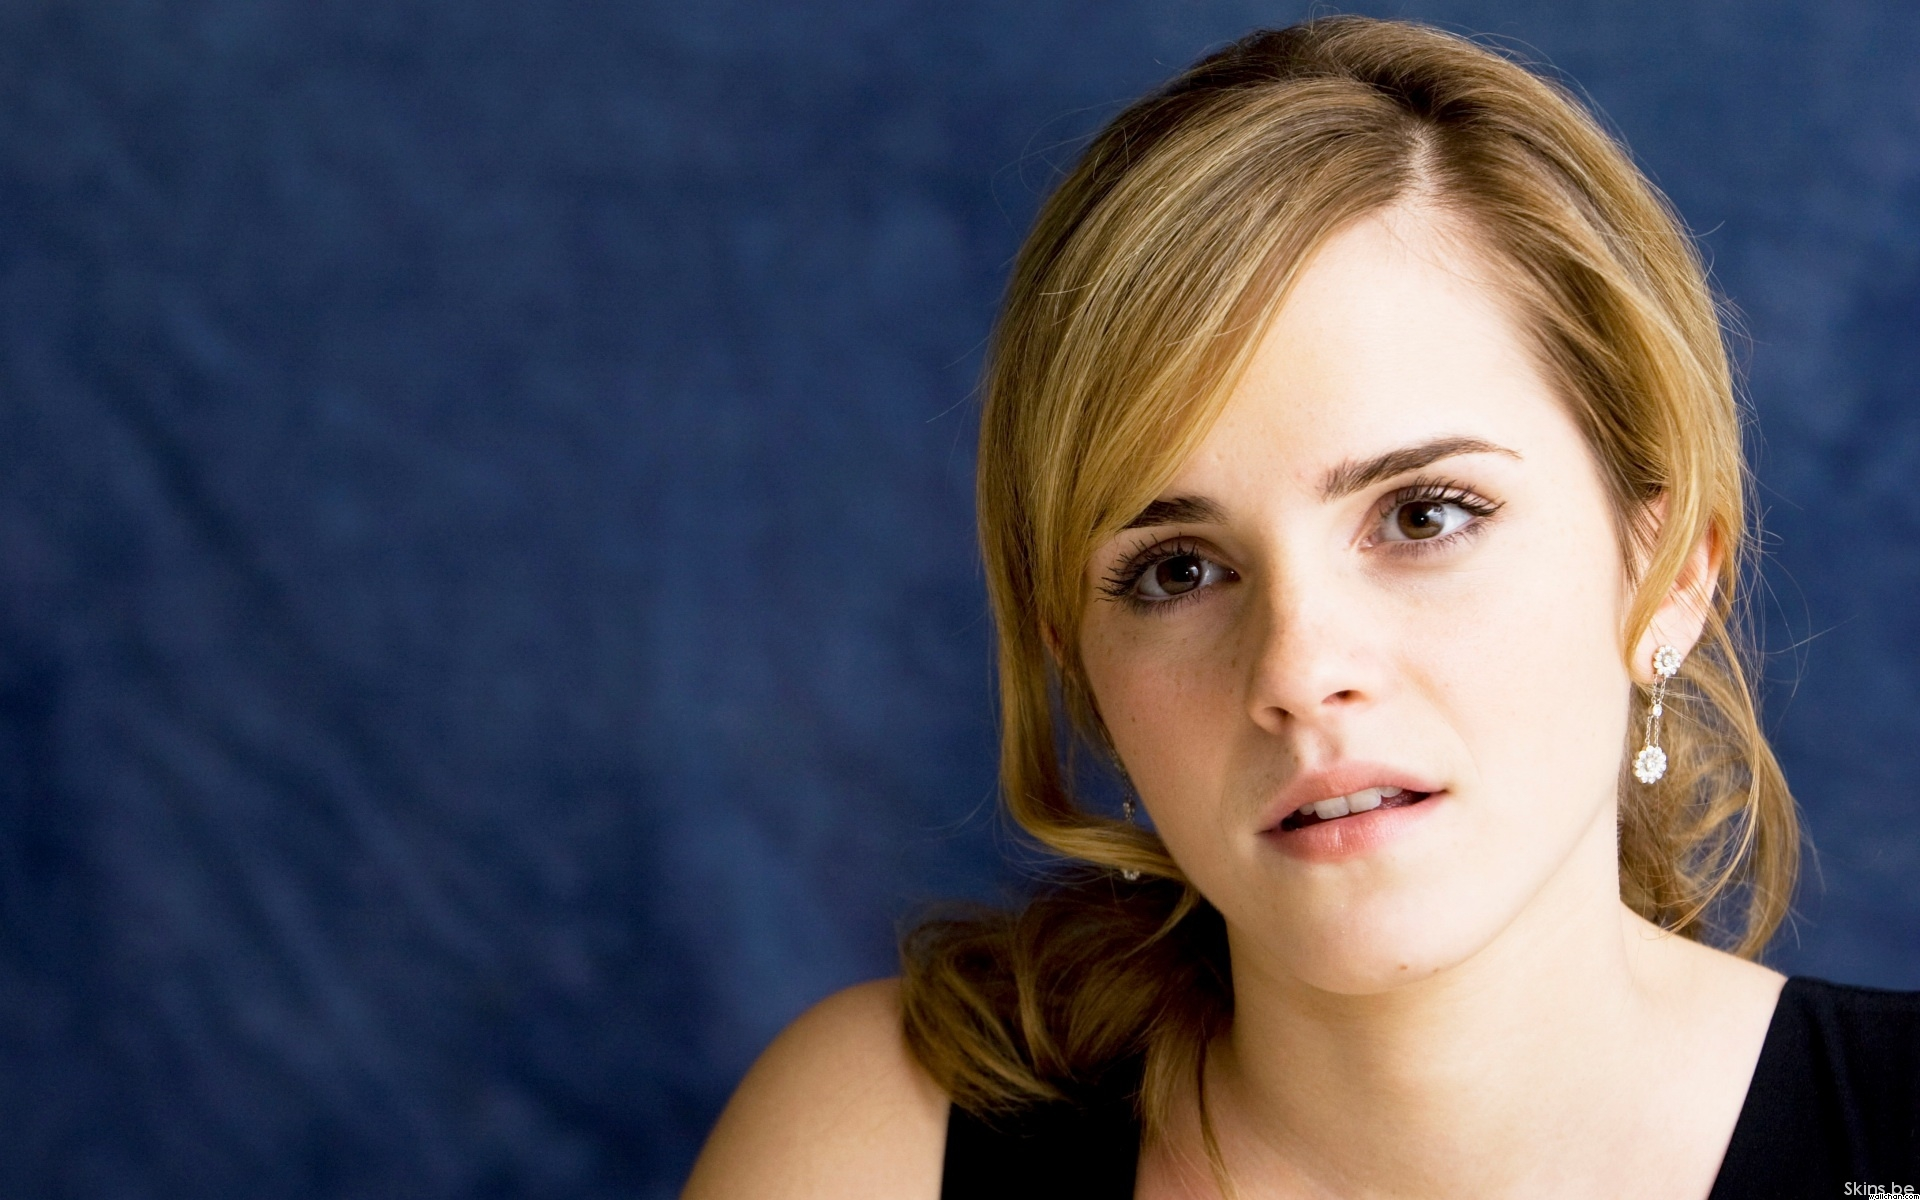 Emma Watson Actress Beautifull Girl